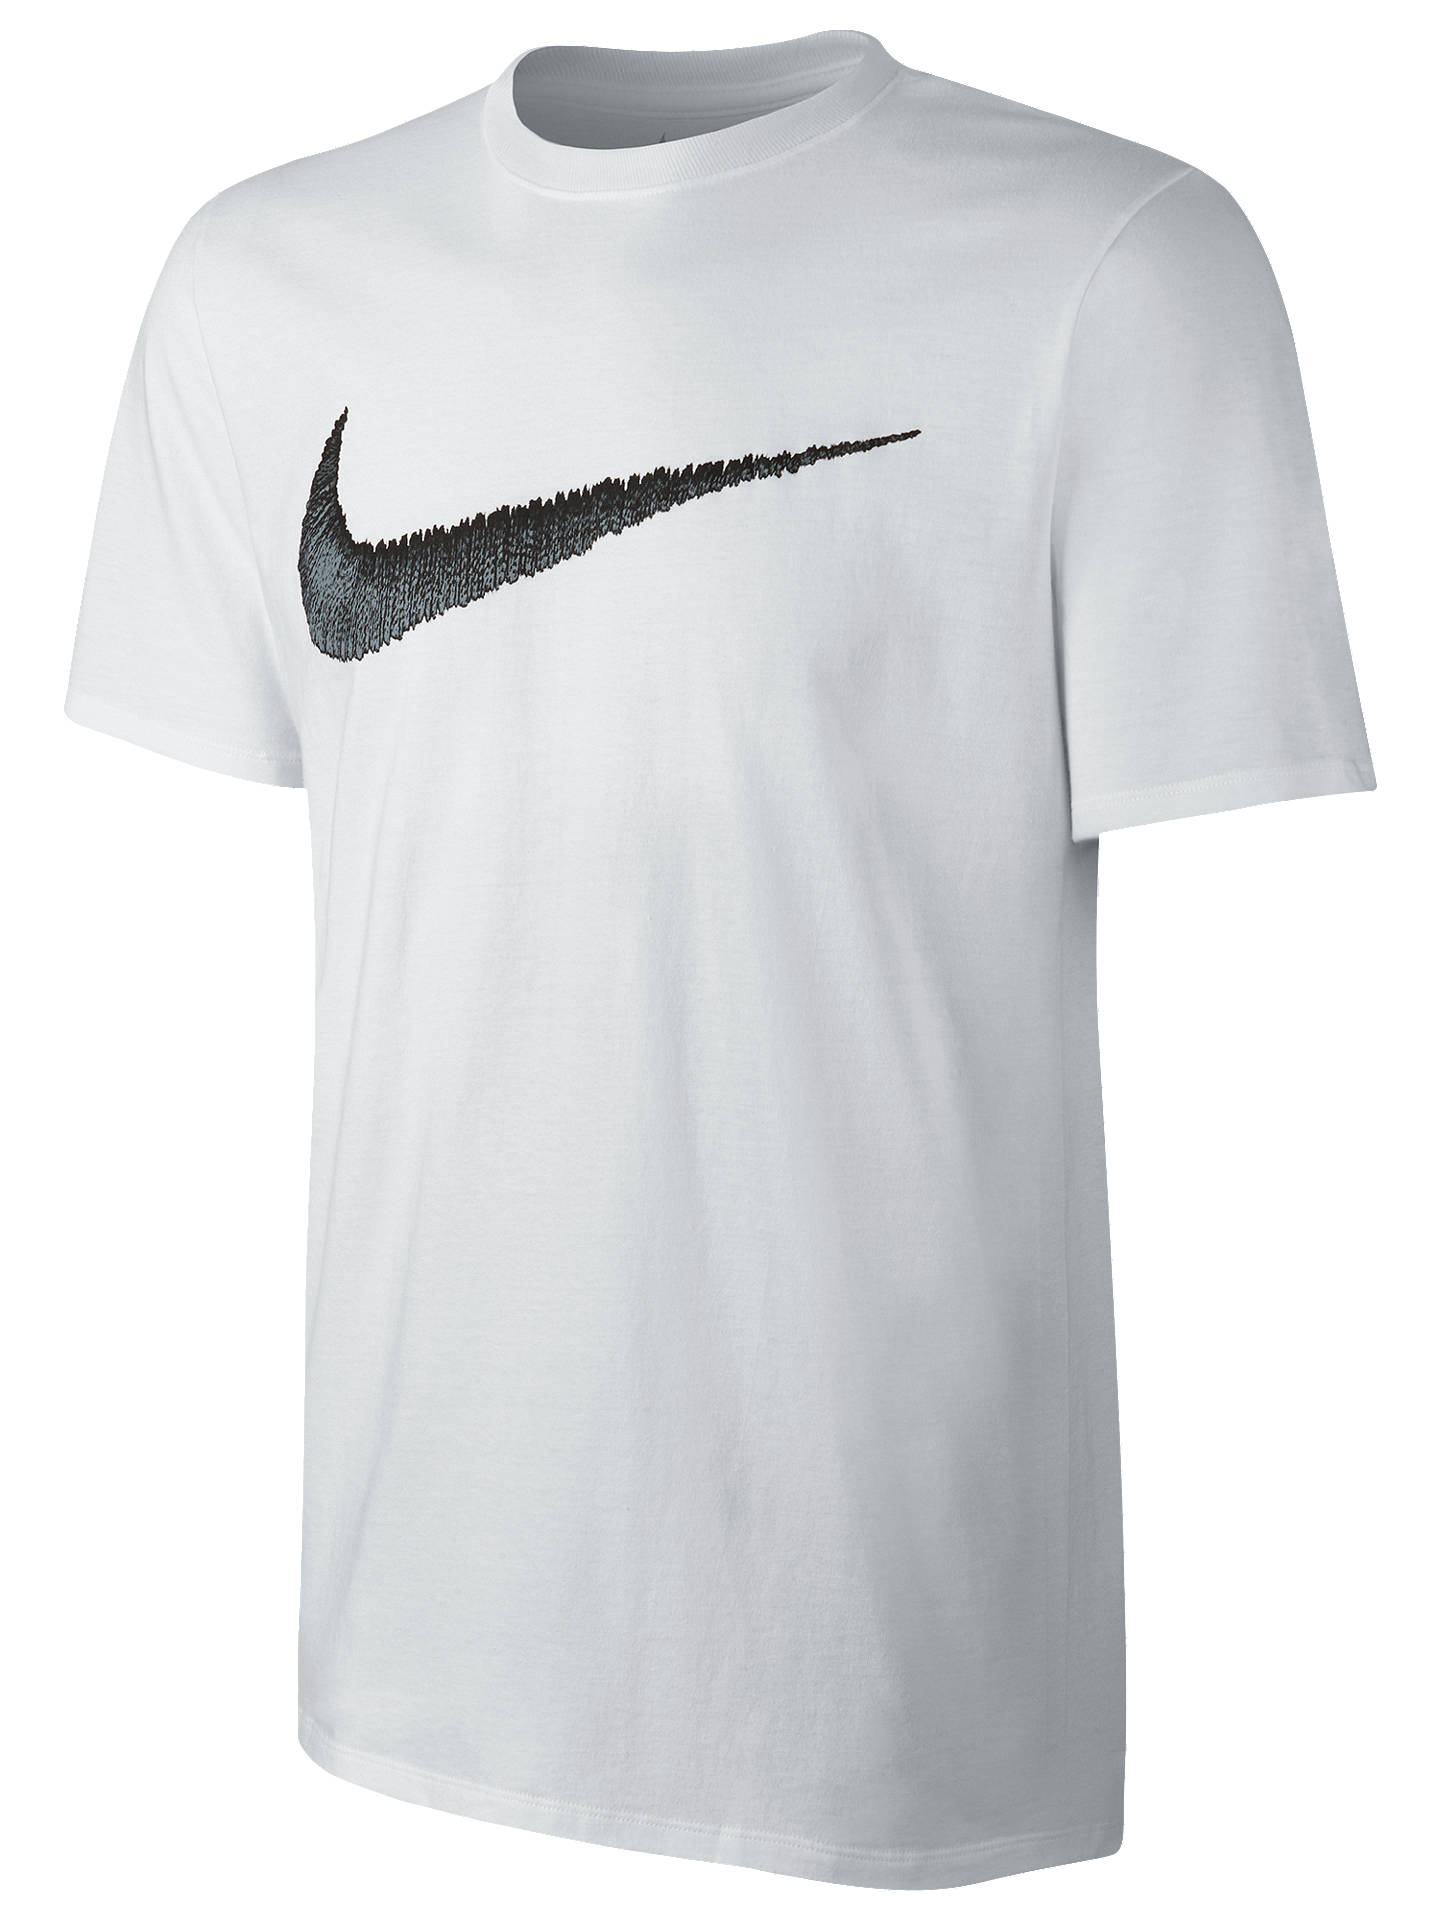 28d68c7d6 Buy Nike Sportswear Swoosh Cotton T-Shirt, White, S Online at johnlewis.